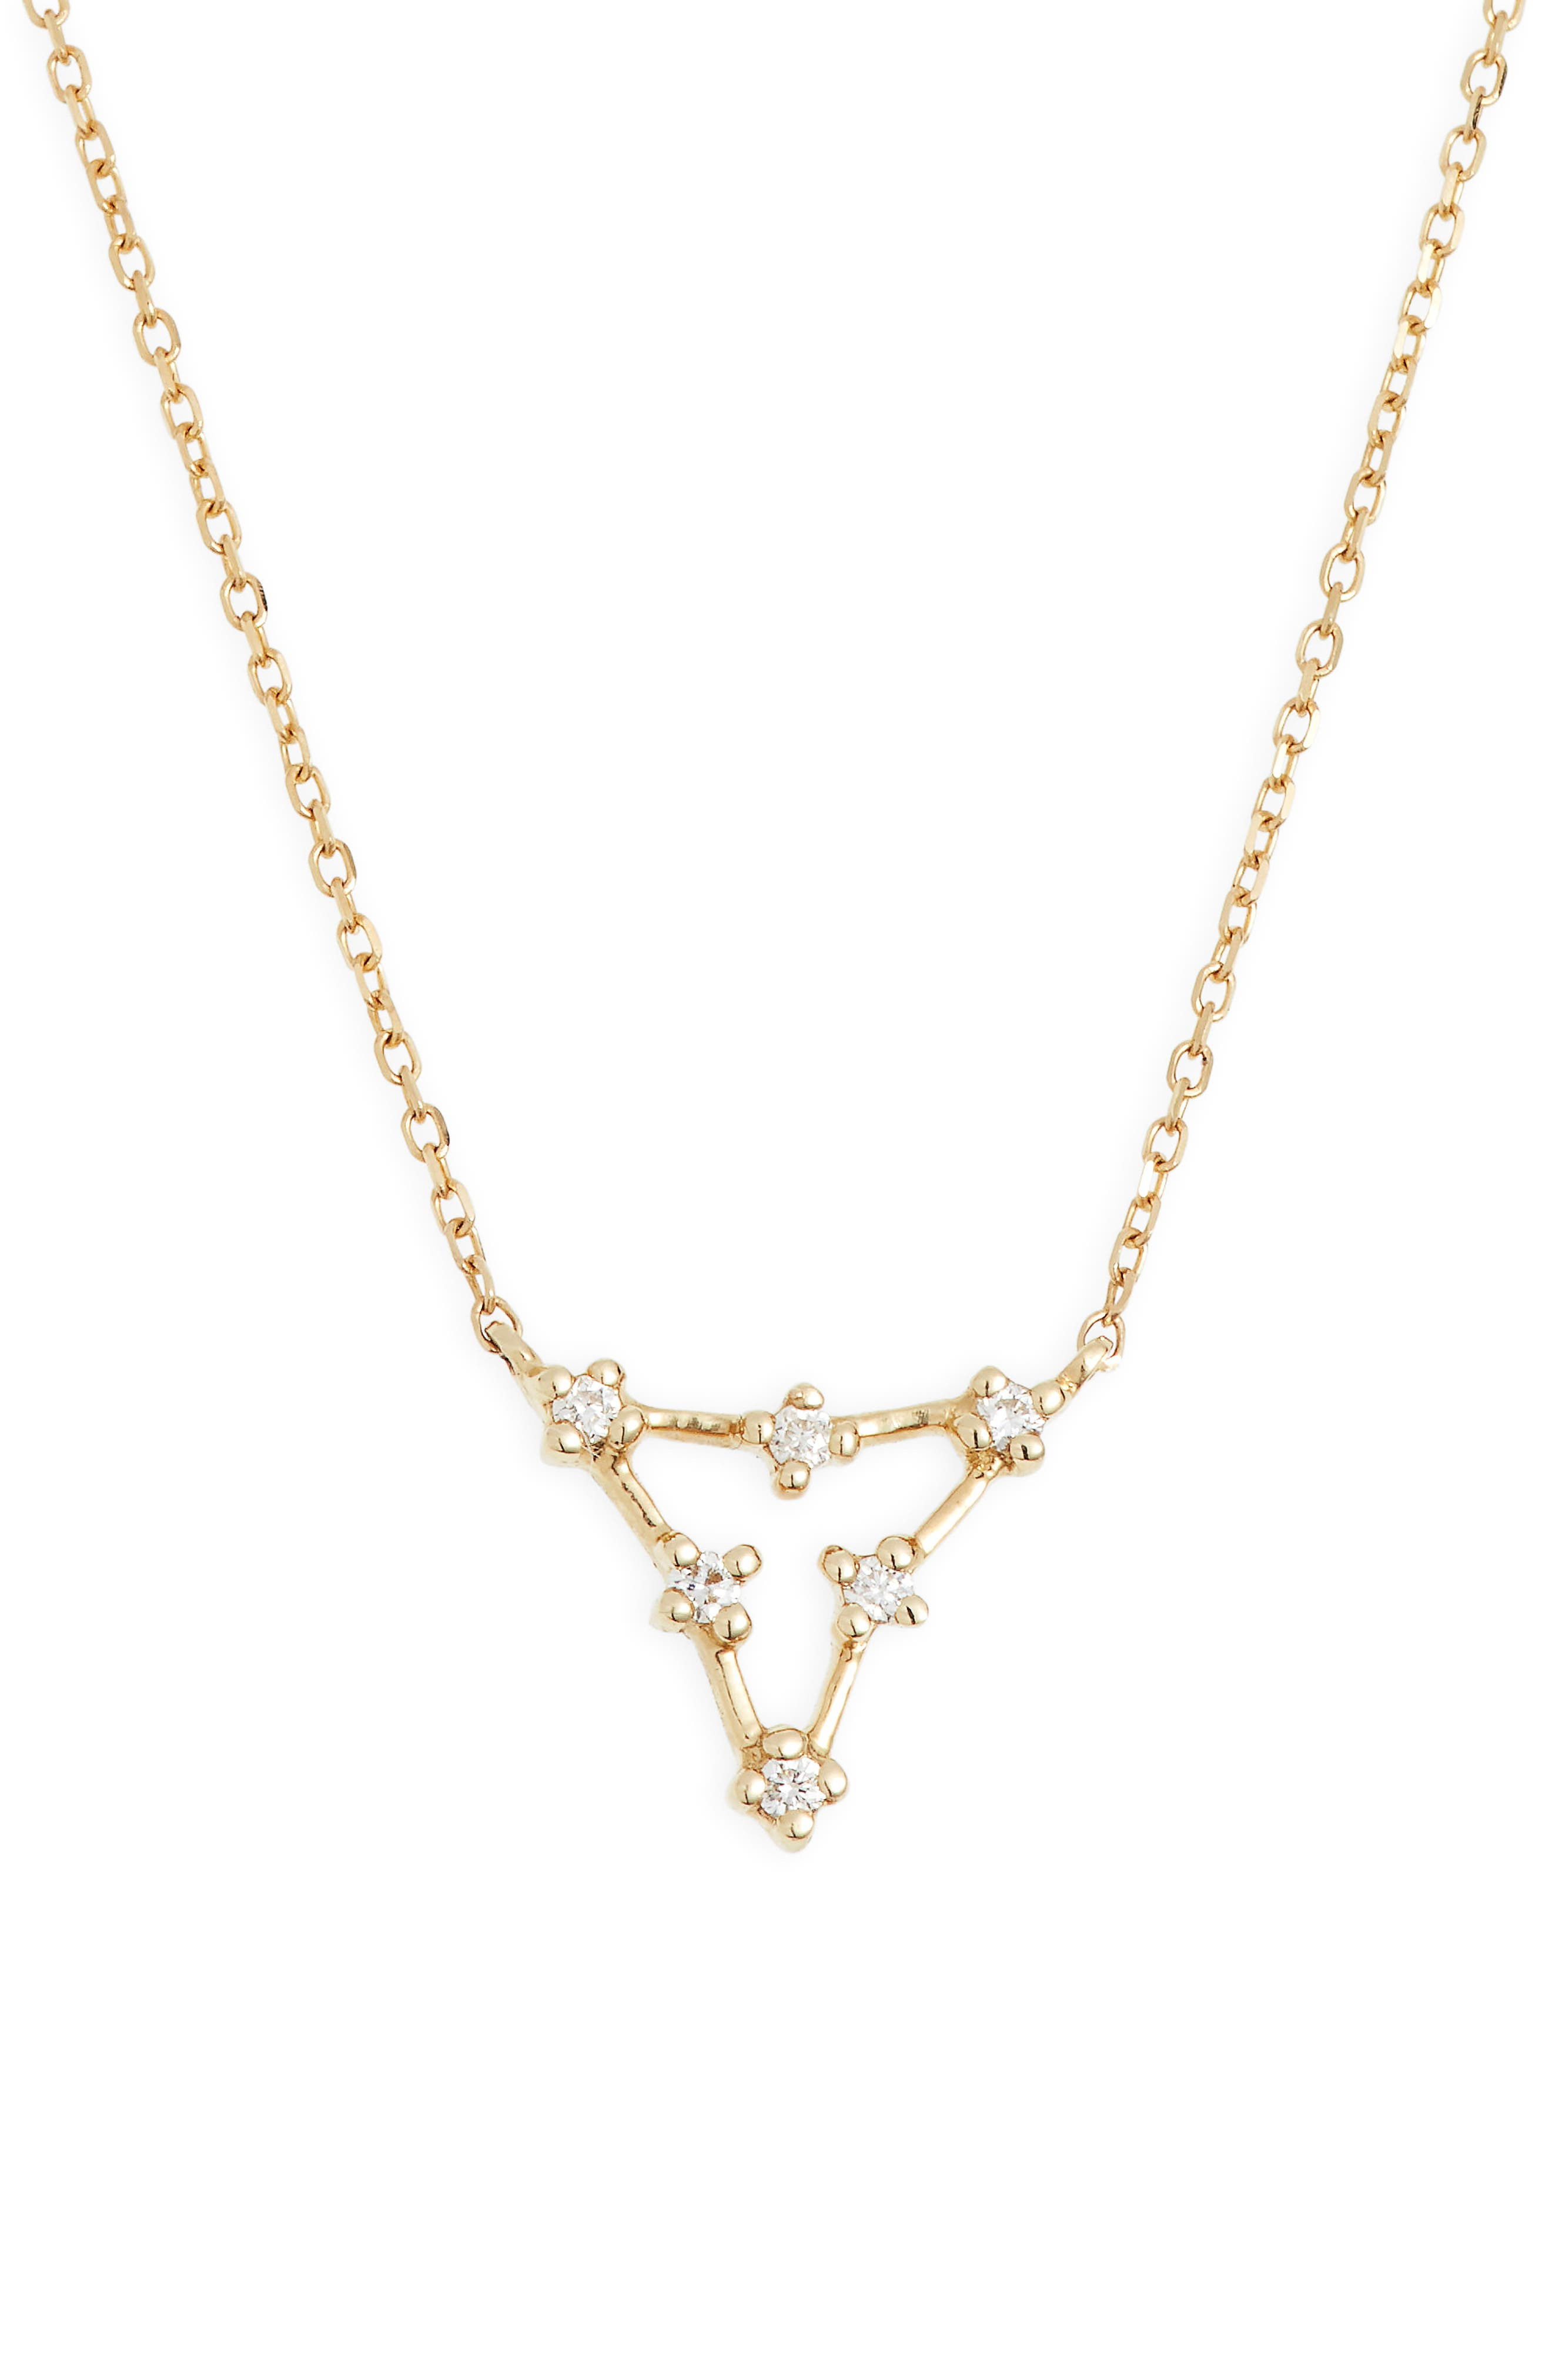 Ava Bea Triangle Necklace,                             Main thumbnail 1, color,                             YELLOW GOLD